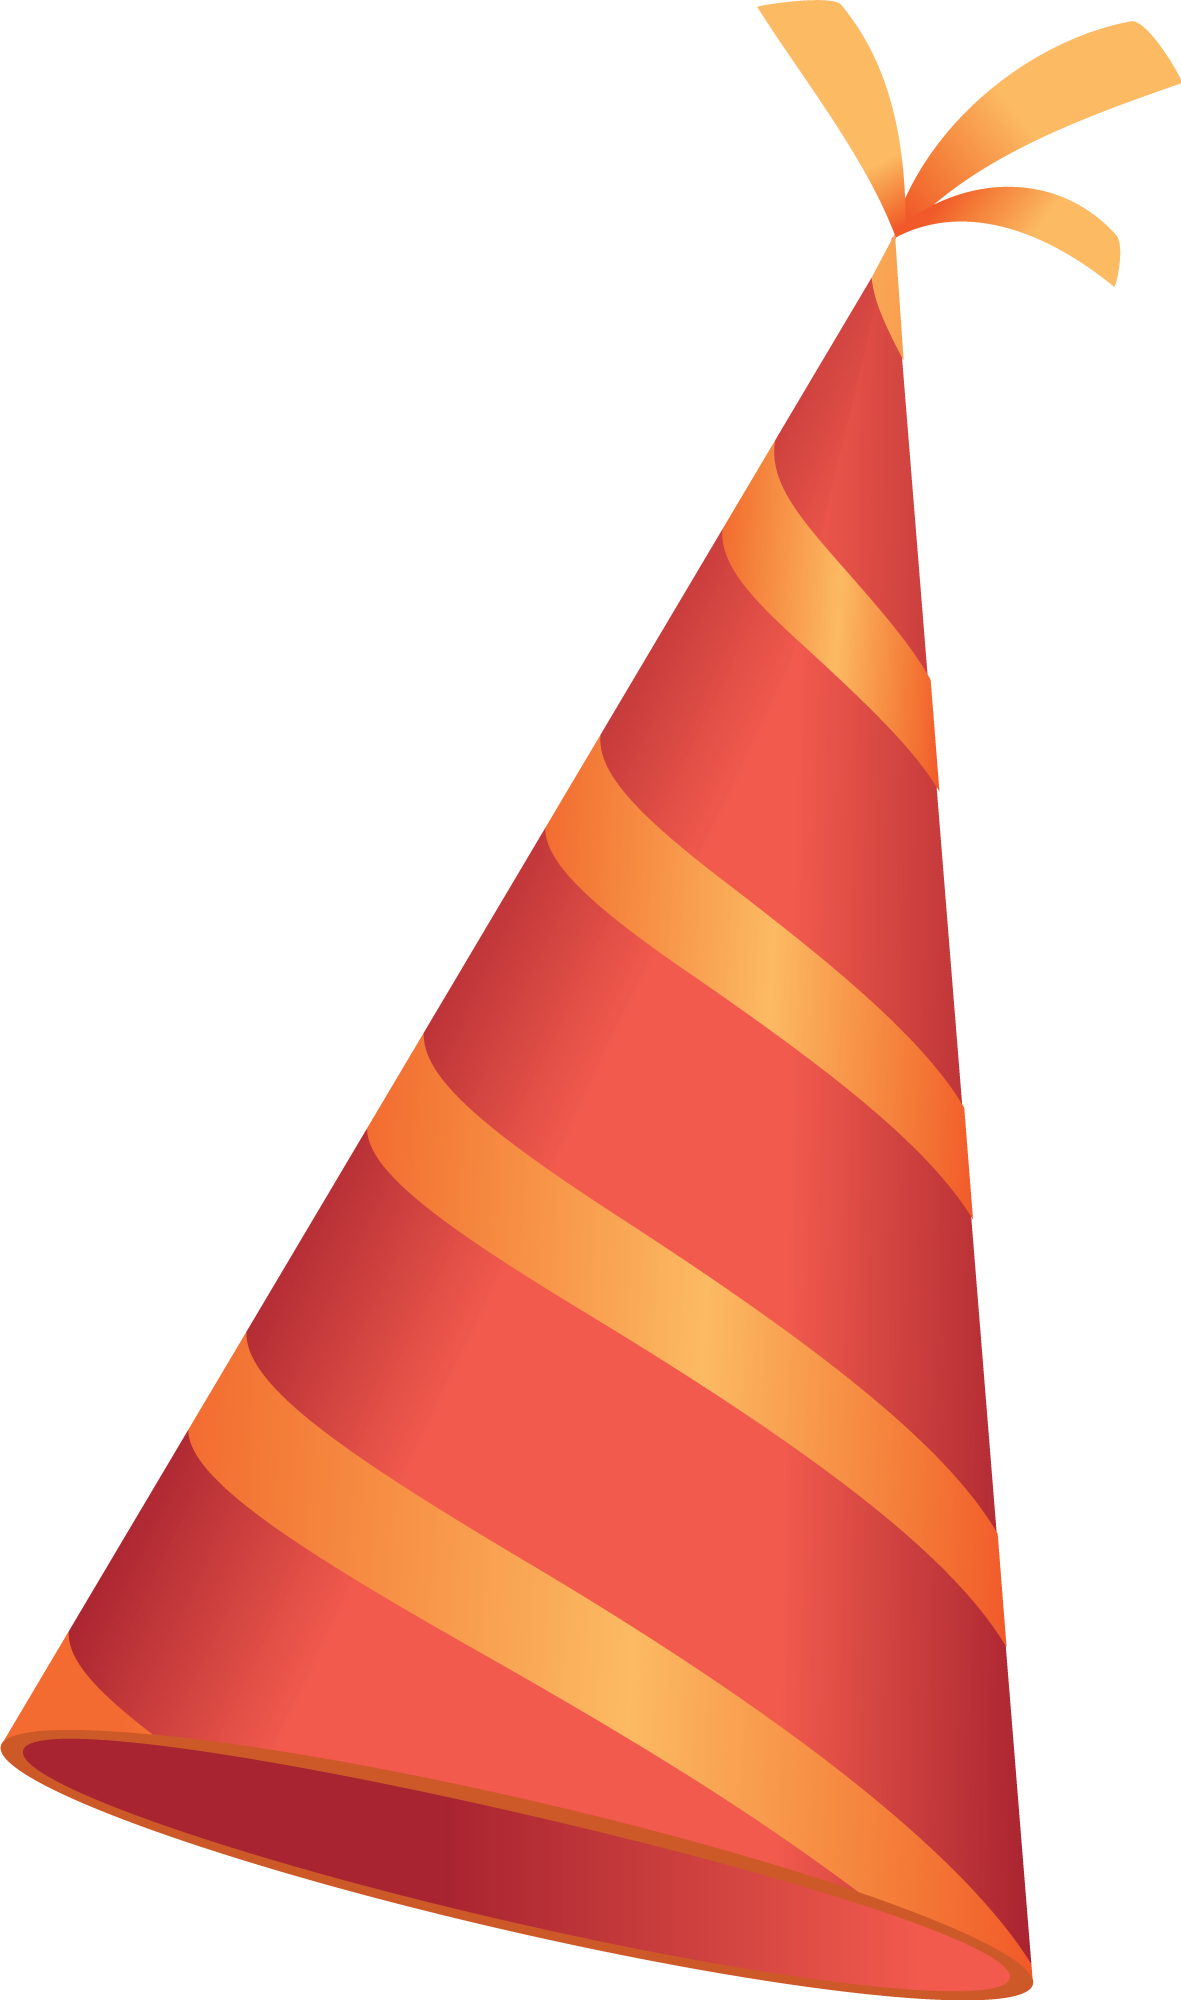 Hat png transparent images. Clipart birthday caps